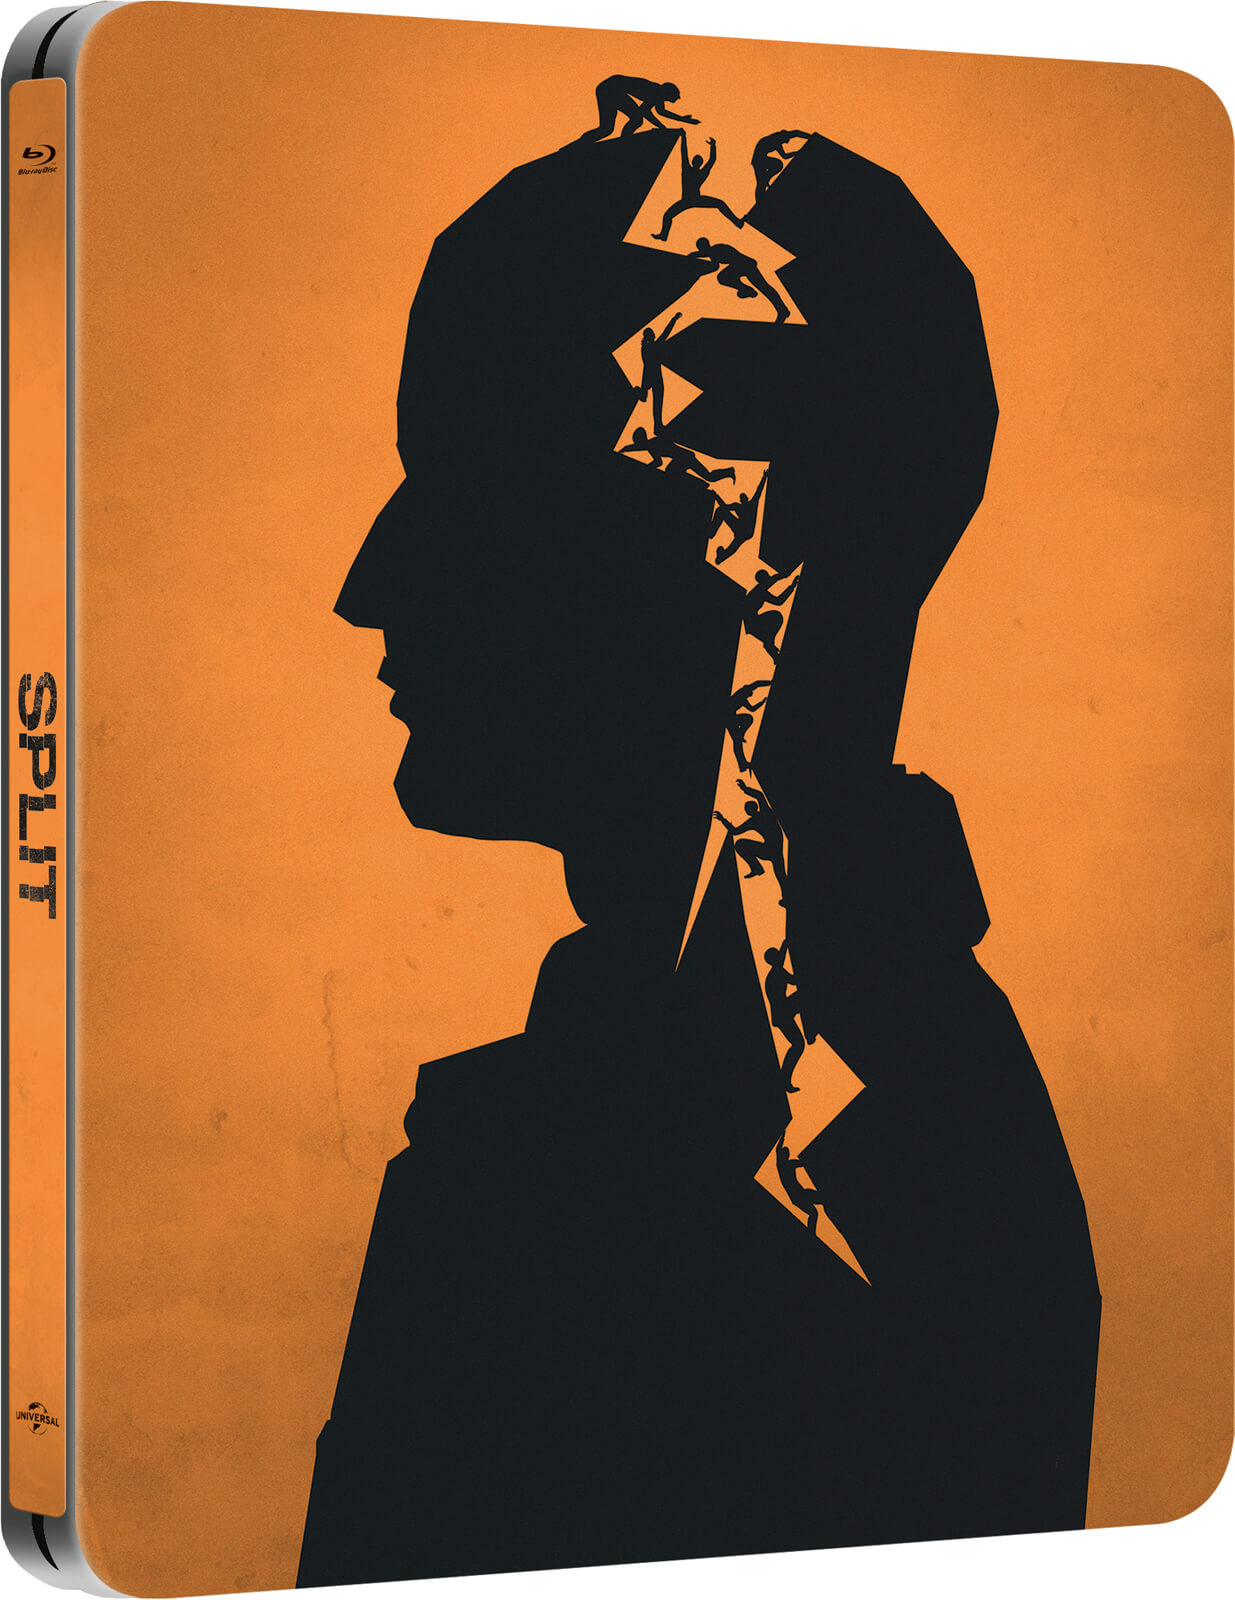 Múltiple (descarga digital) - Steelbook Ed. Limitada Exclusivo de Zavvi